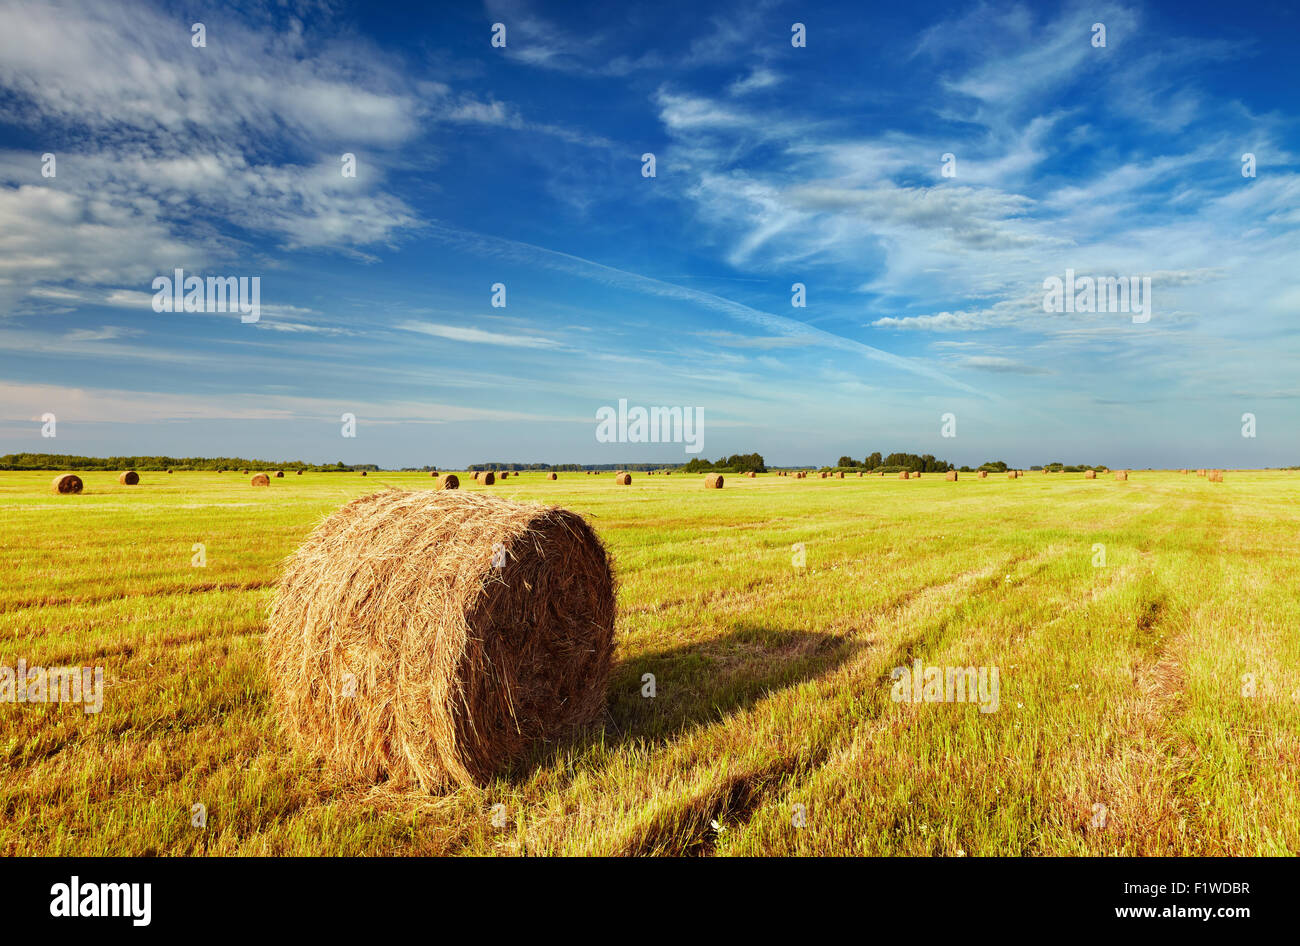 Mown field with straw bales - Stock Image